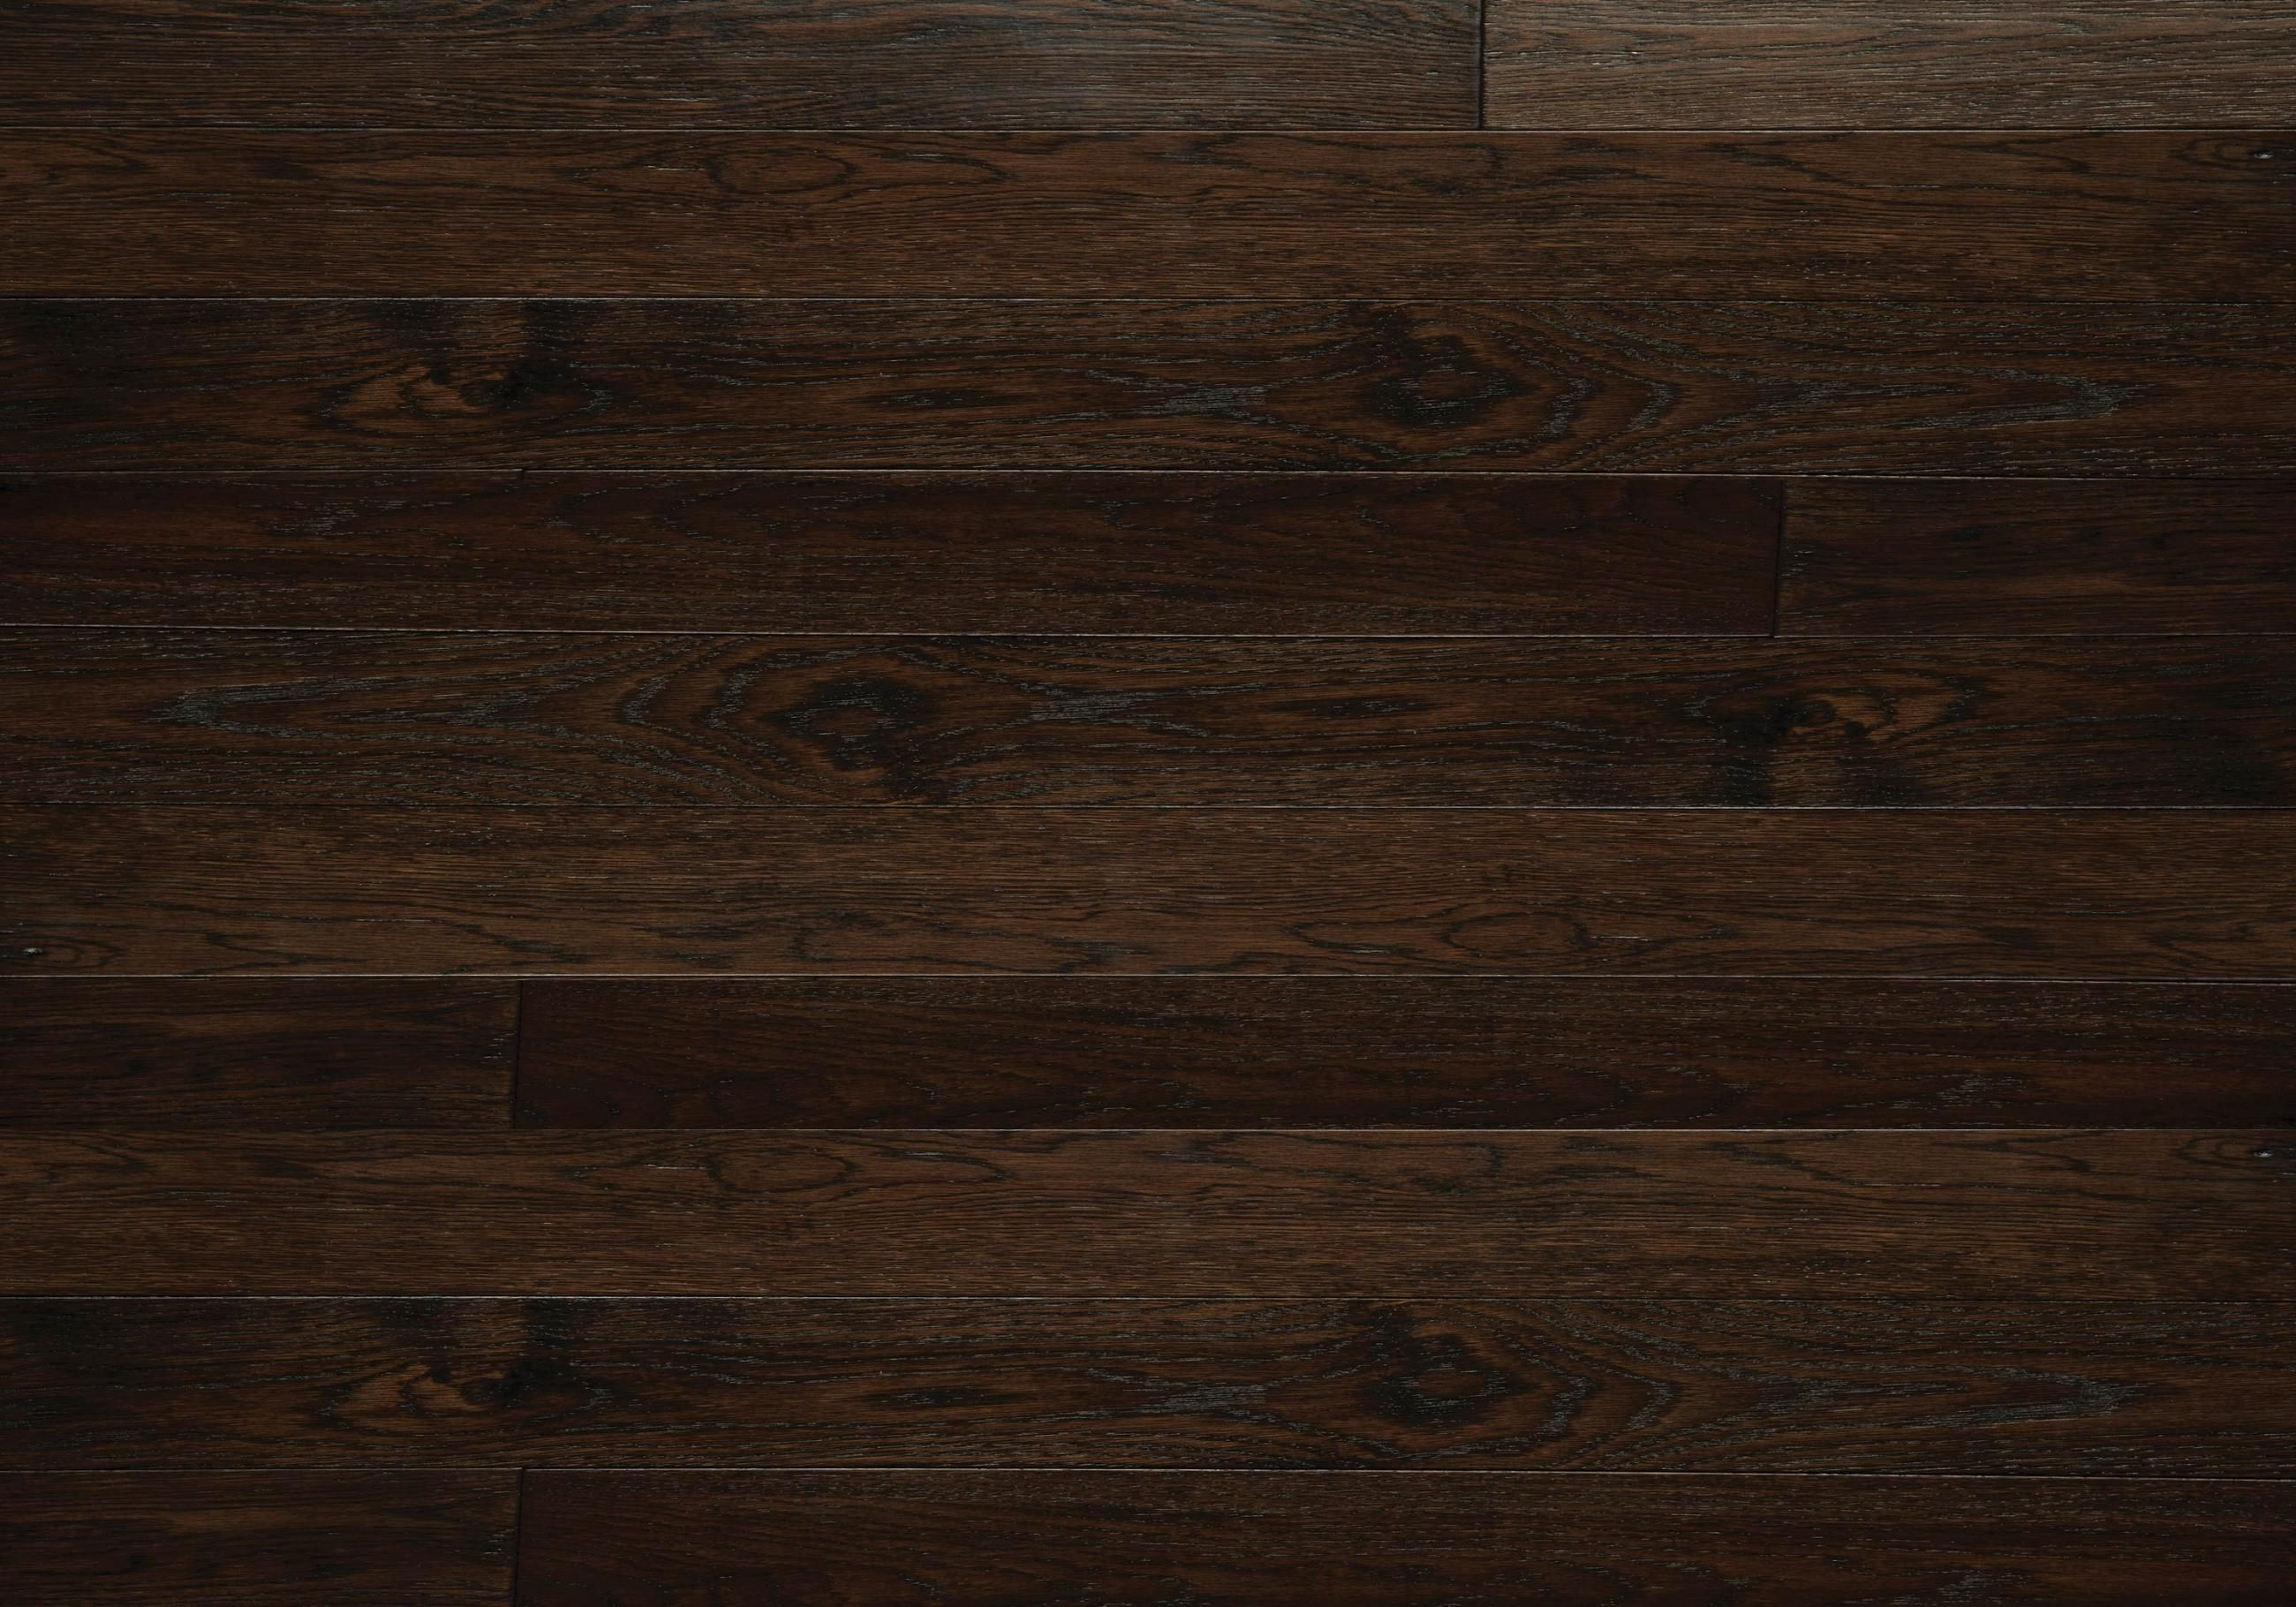 Caribou designer white oak lauzon hardwood flooring for Hardwood floors or carpet